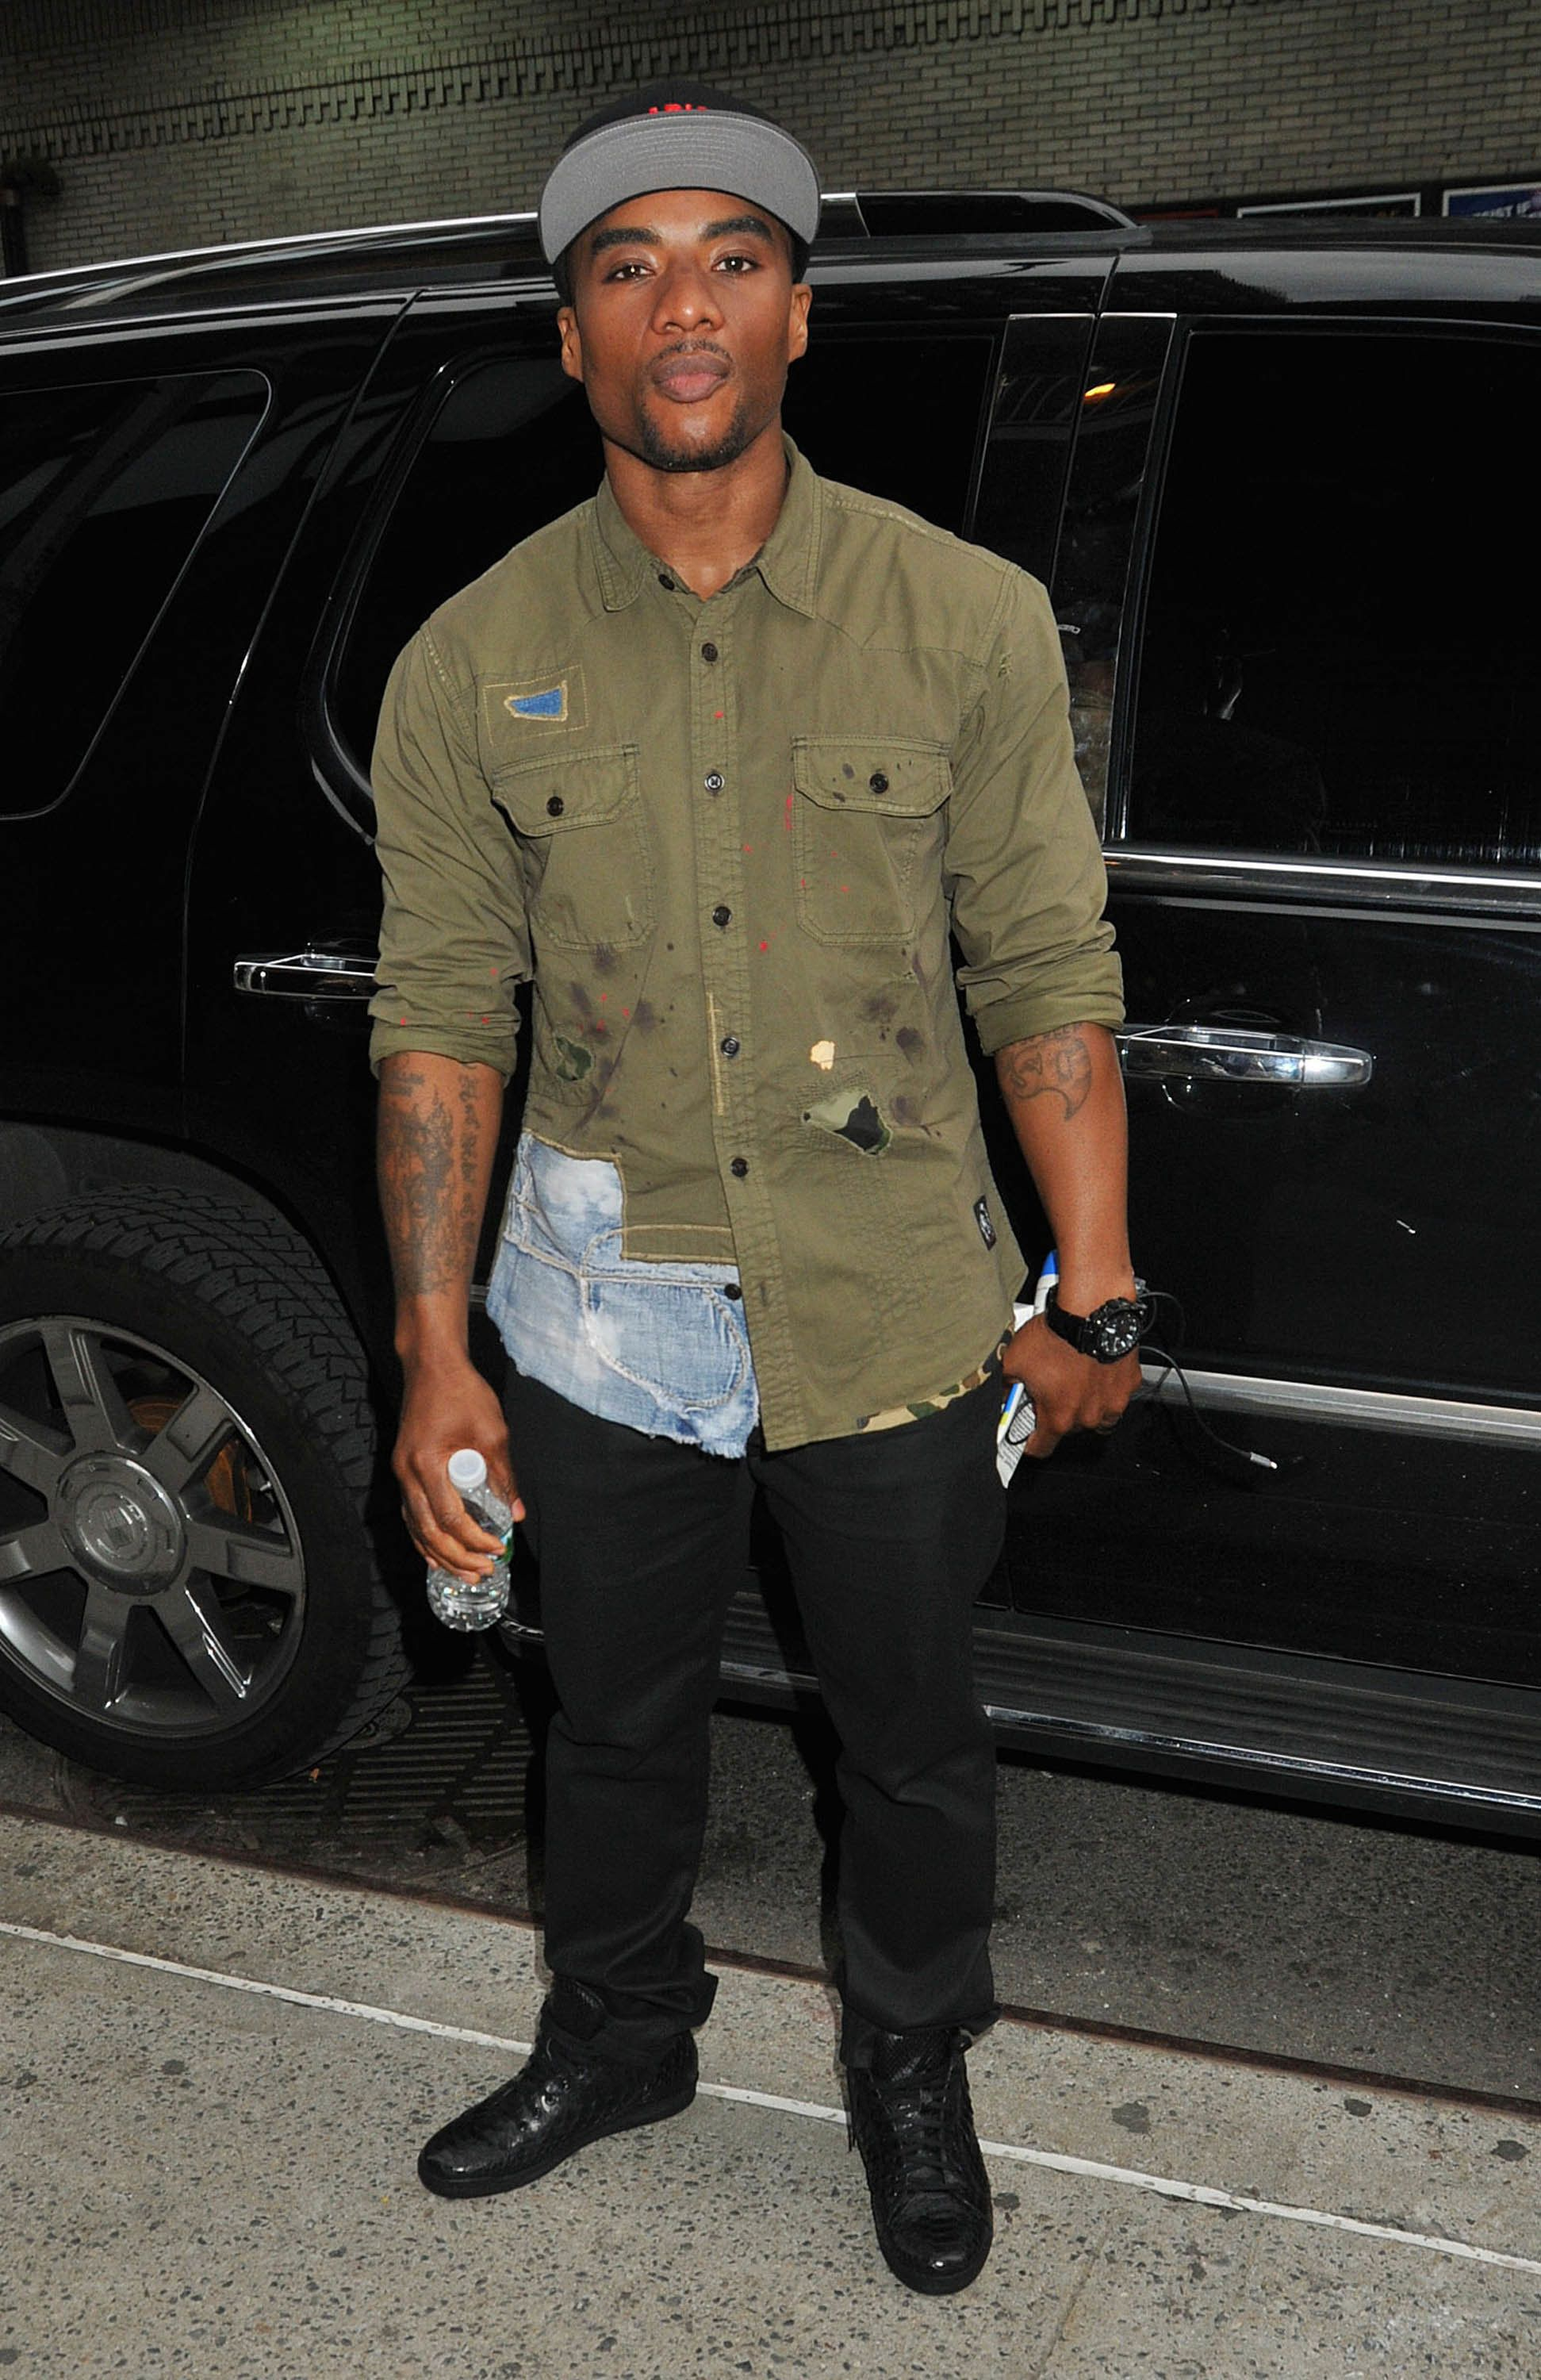 NEW YORK, NY - MAY 10:  Charlamagne Tha God is seen on May 10, 2016 in New York City.  (Photo by Demis Maryannakis/Star Max/GC Images)